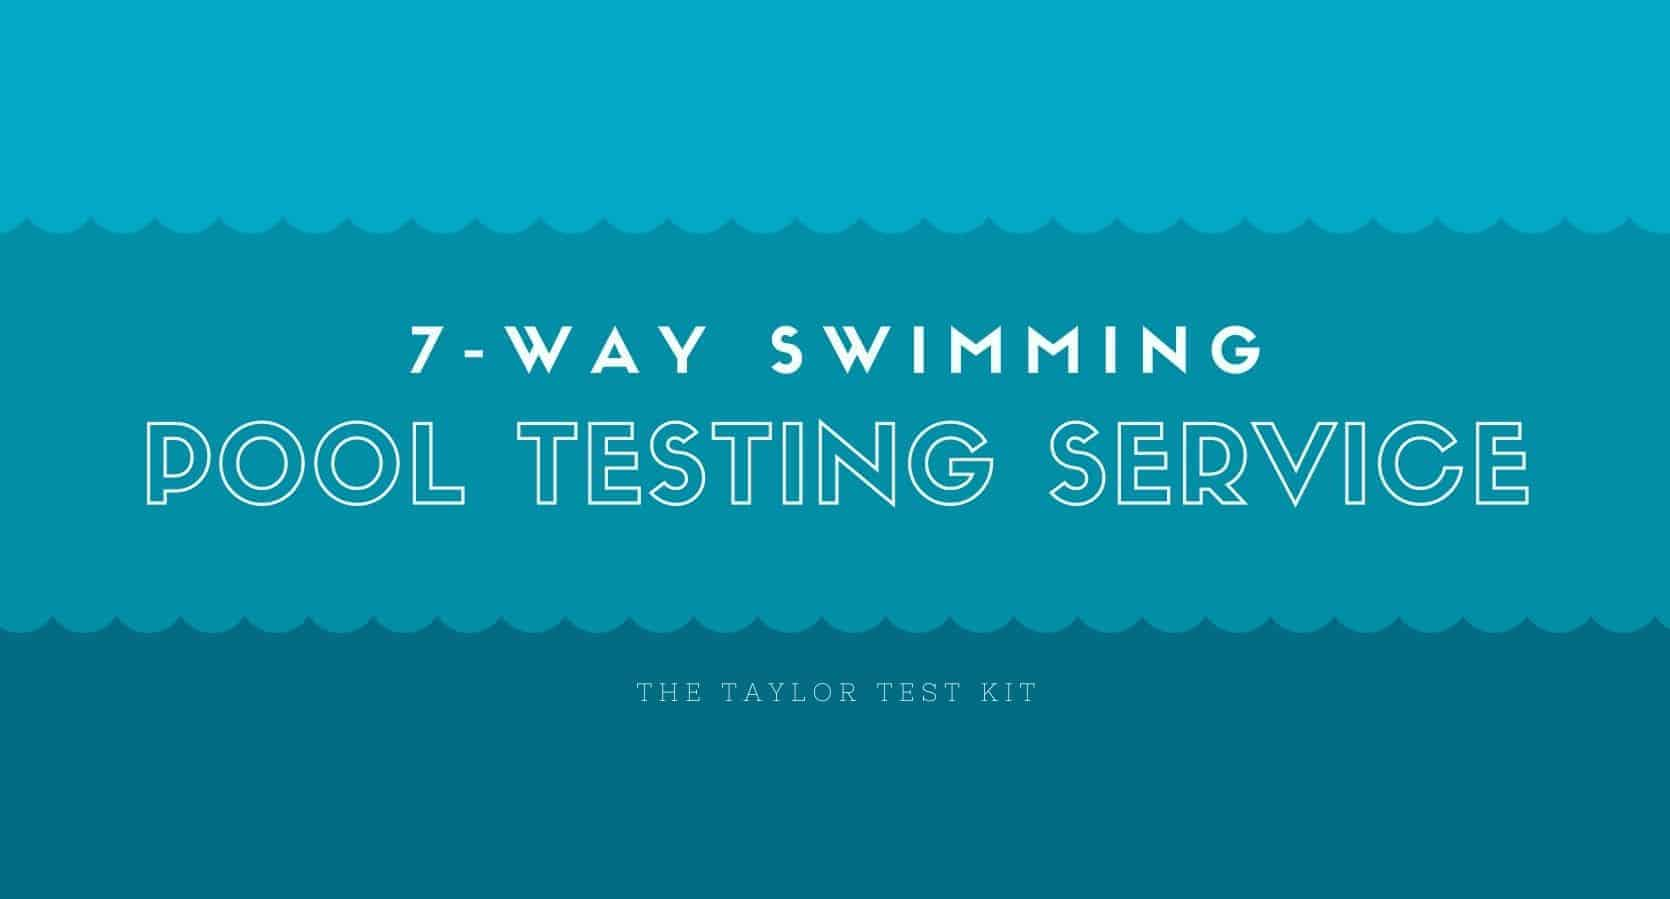 7-way swimming pool testing service in Sarasota Florida.